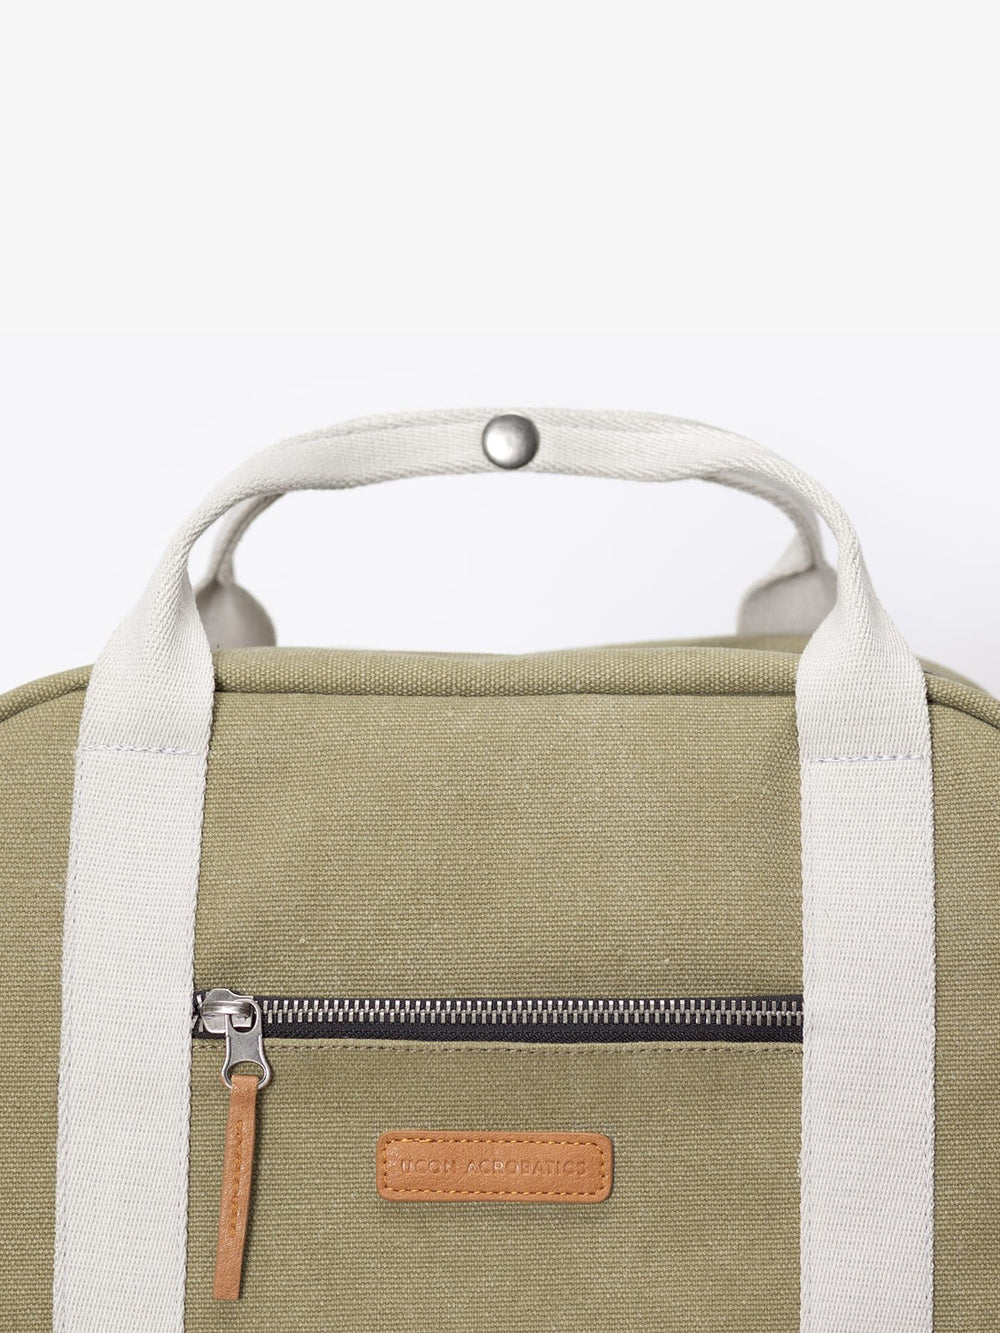 Vegan leather details of Ison laptop backpack